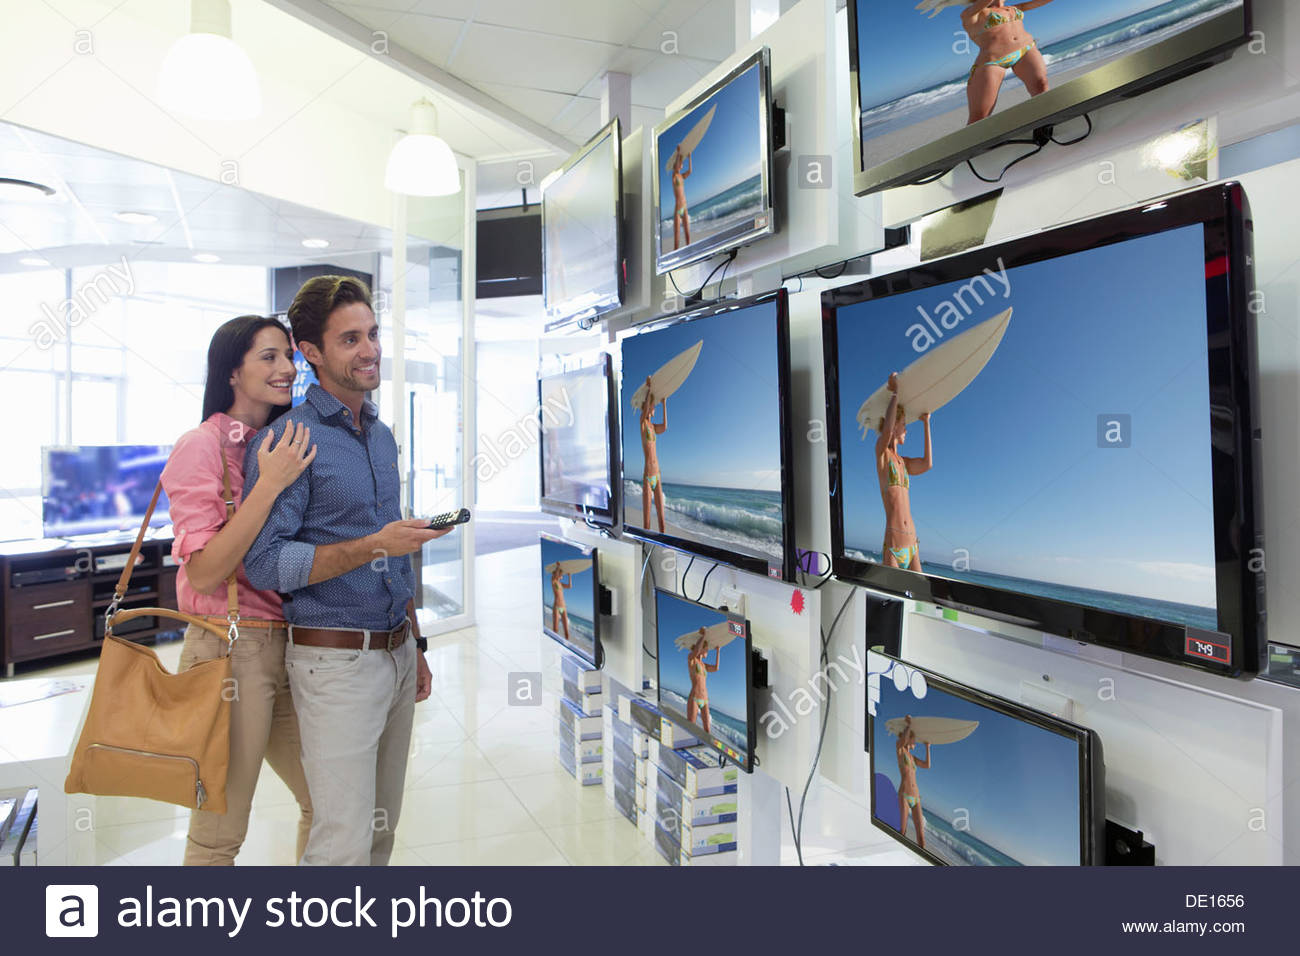 Smiling couple looking at surfer on flat screen televisions in electronics store - Stock Image